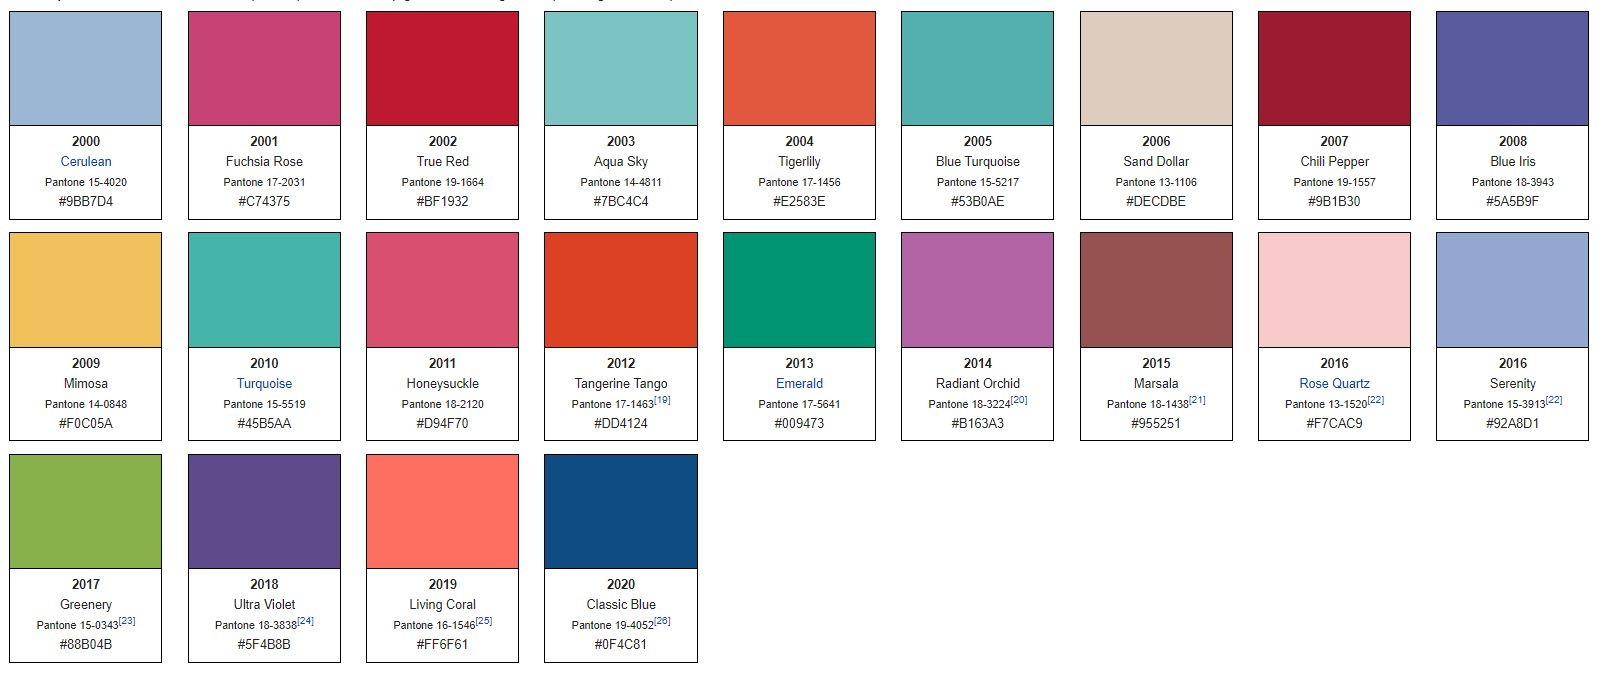 Patone Color of the Year Since 2000